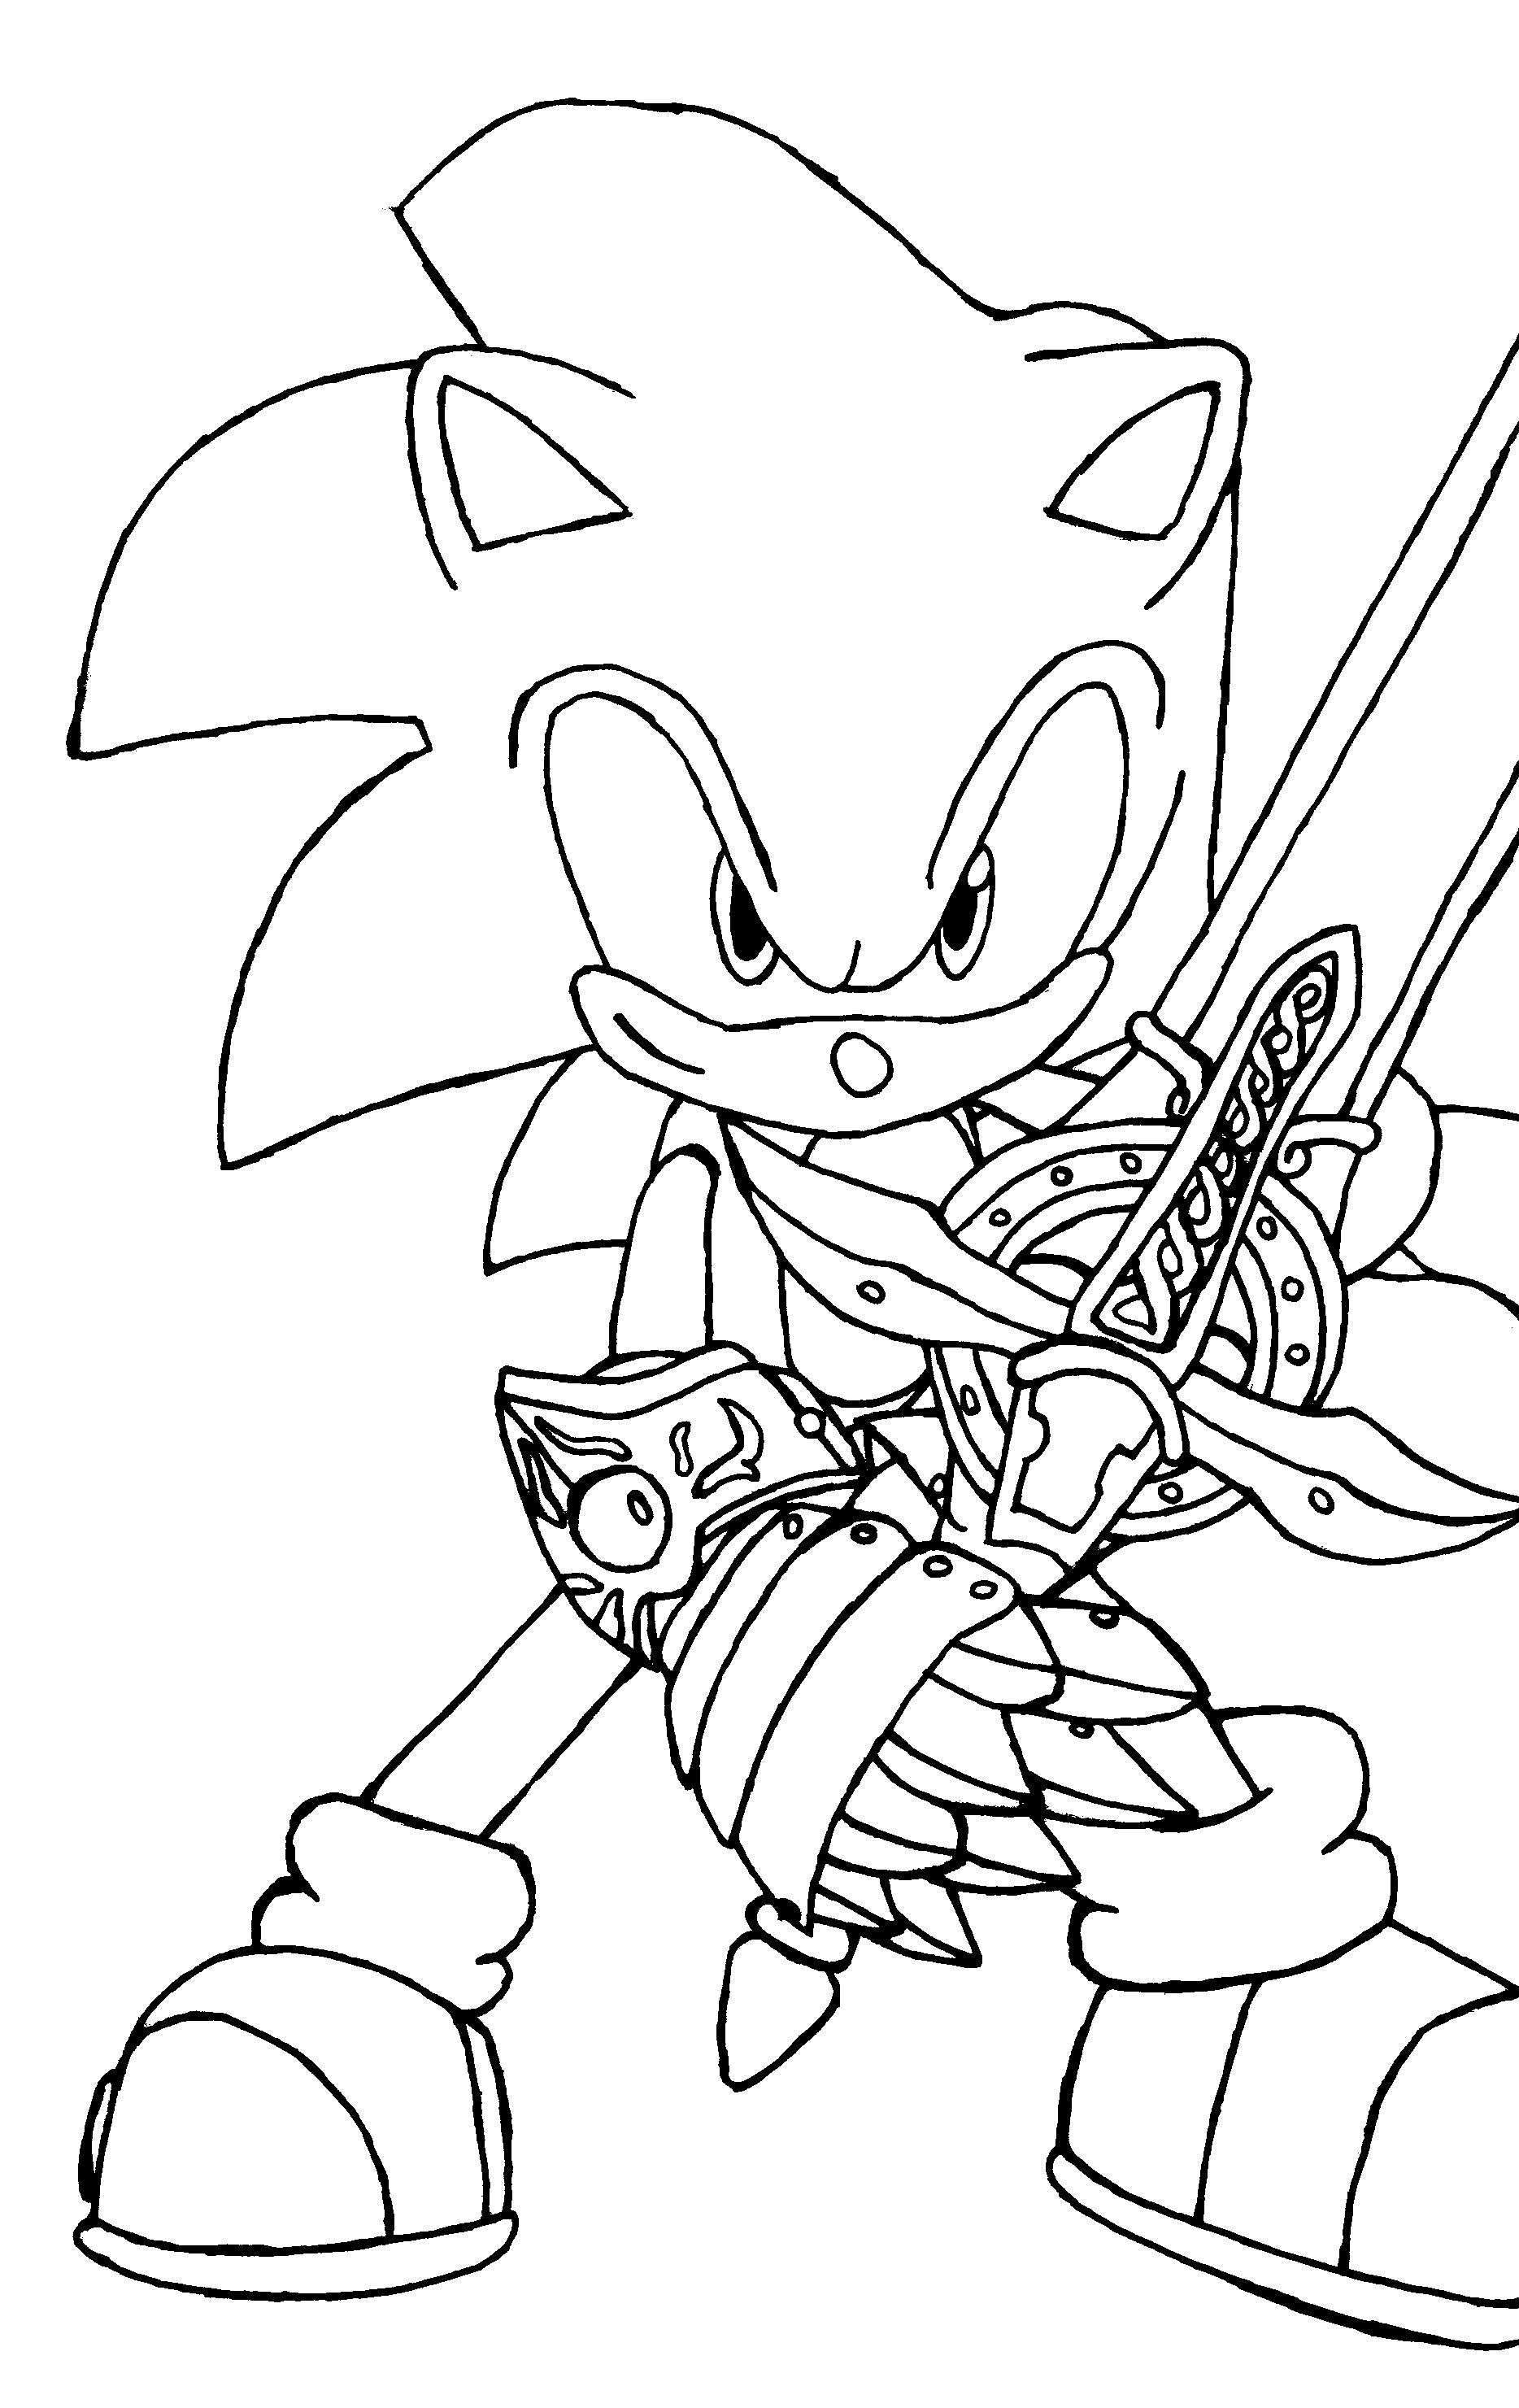 Sonic The Werehog Coloring Pages To Print - Coloring Home